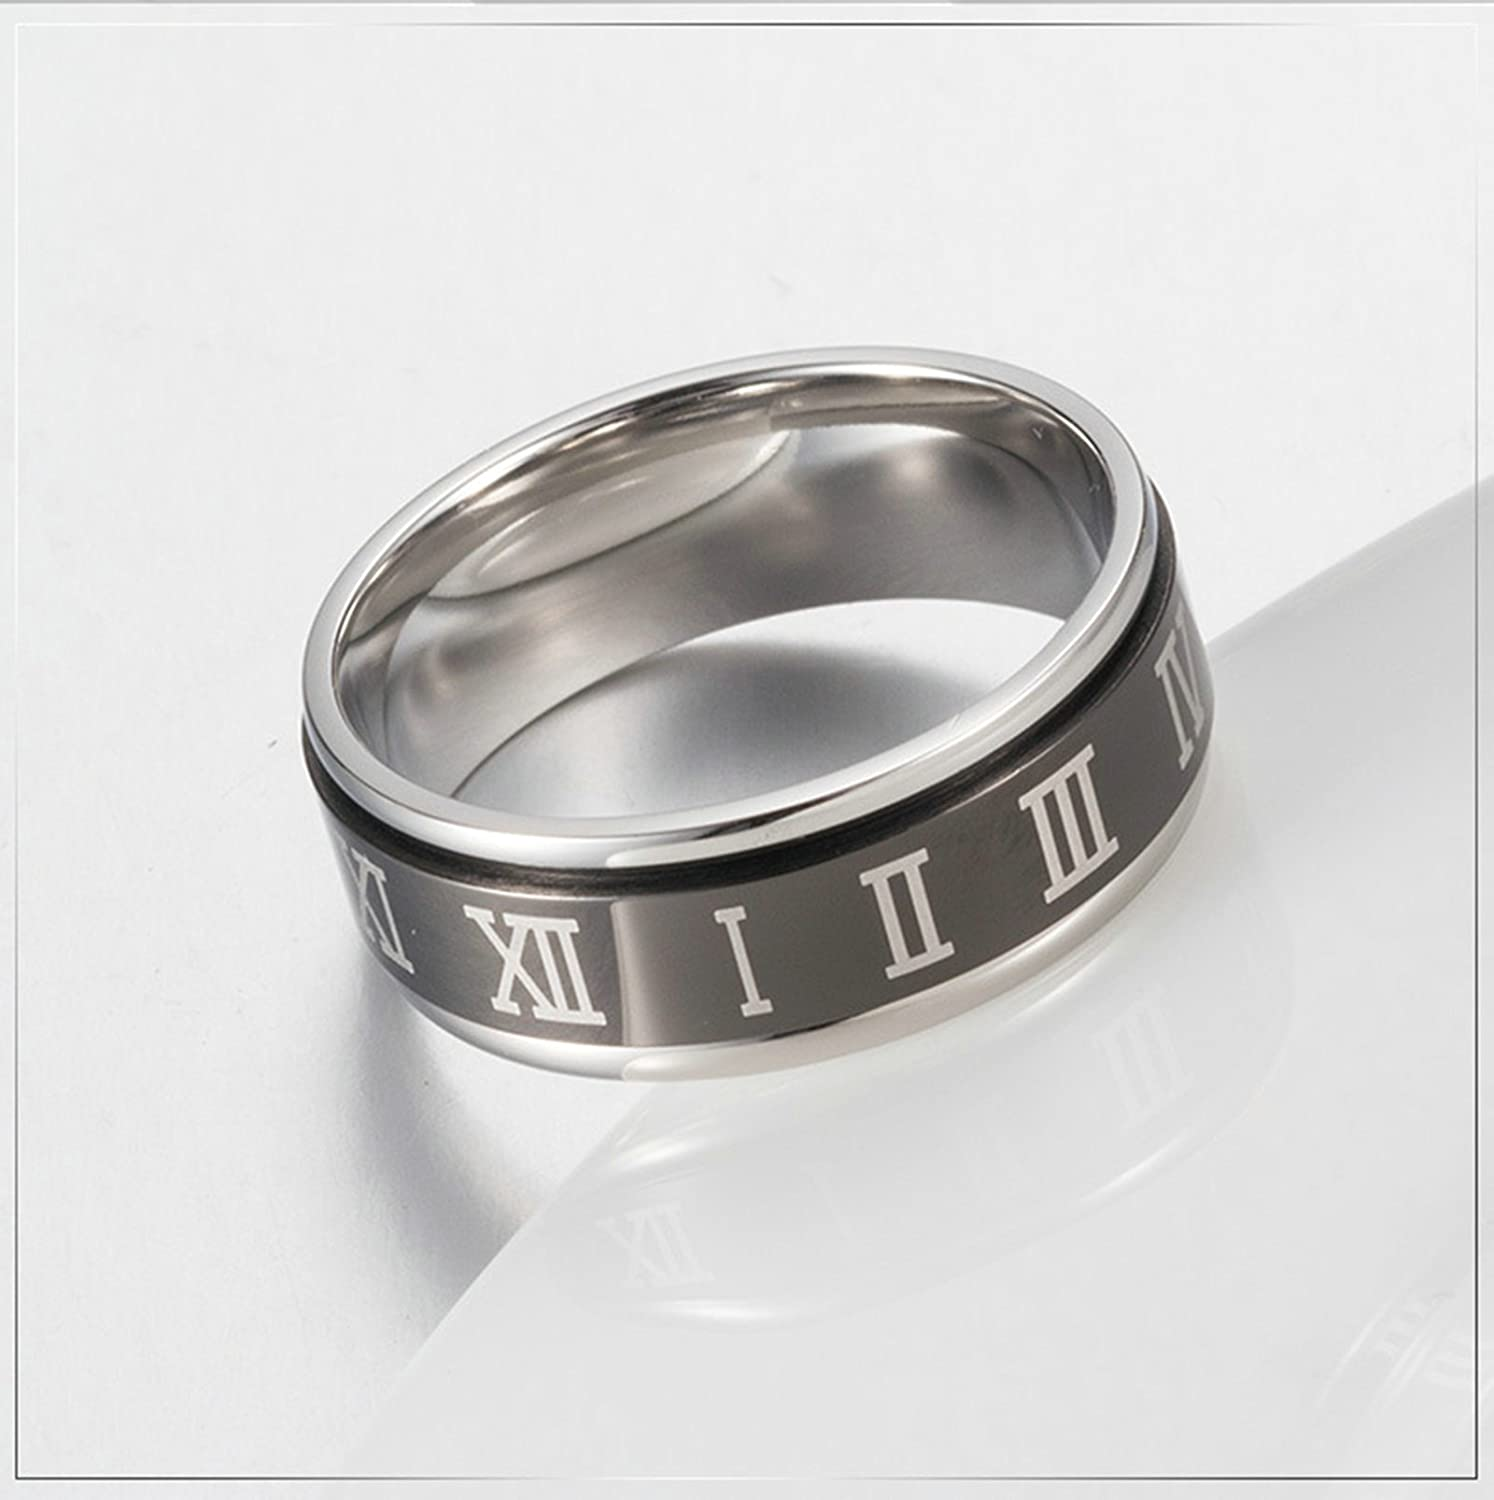 Bishilin Stainless Steel Ring Men Round Roman Numerals Mens Wedding Bands Black Size 11